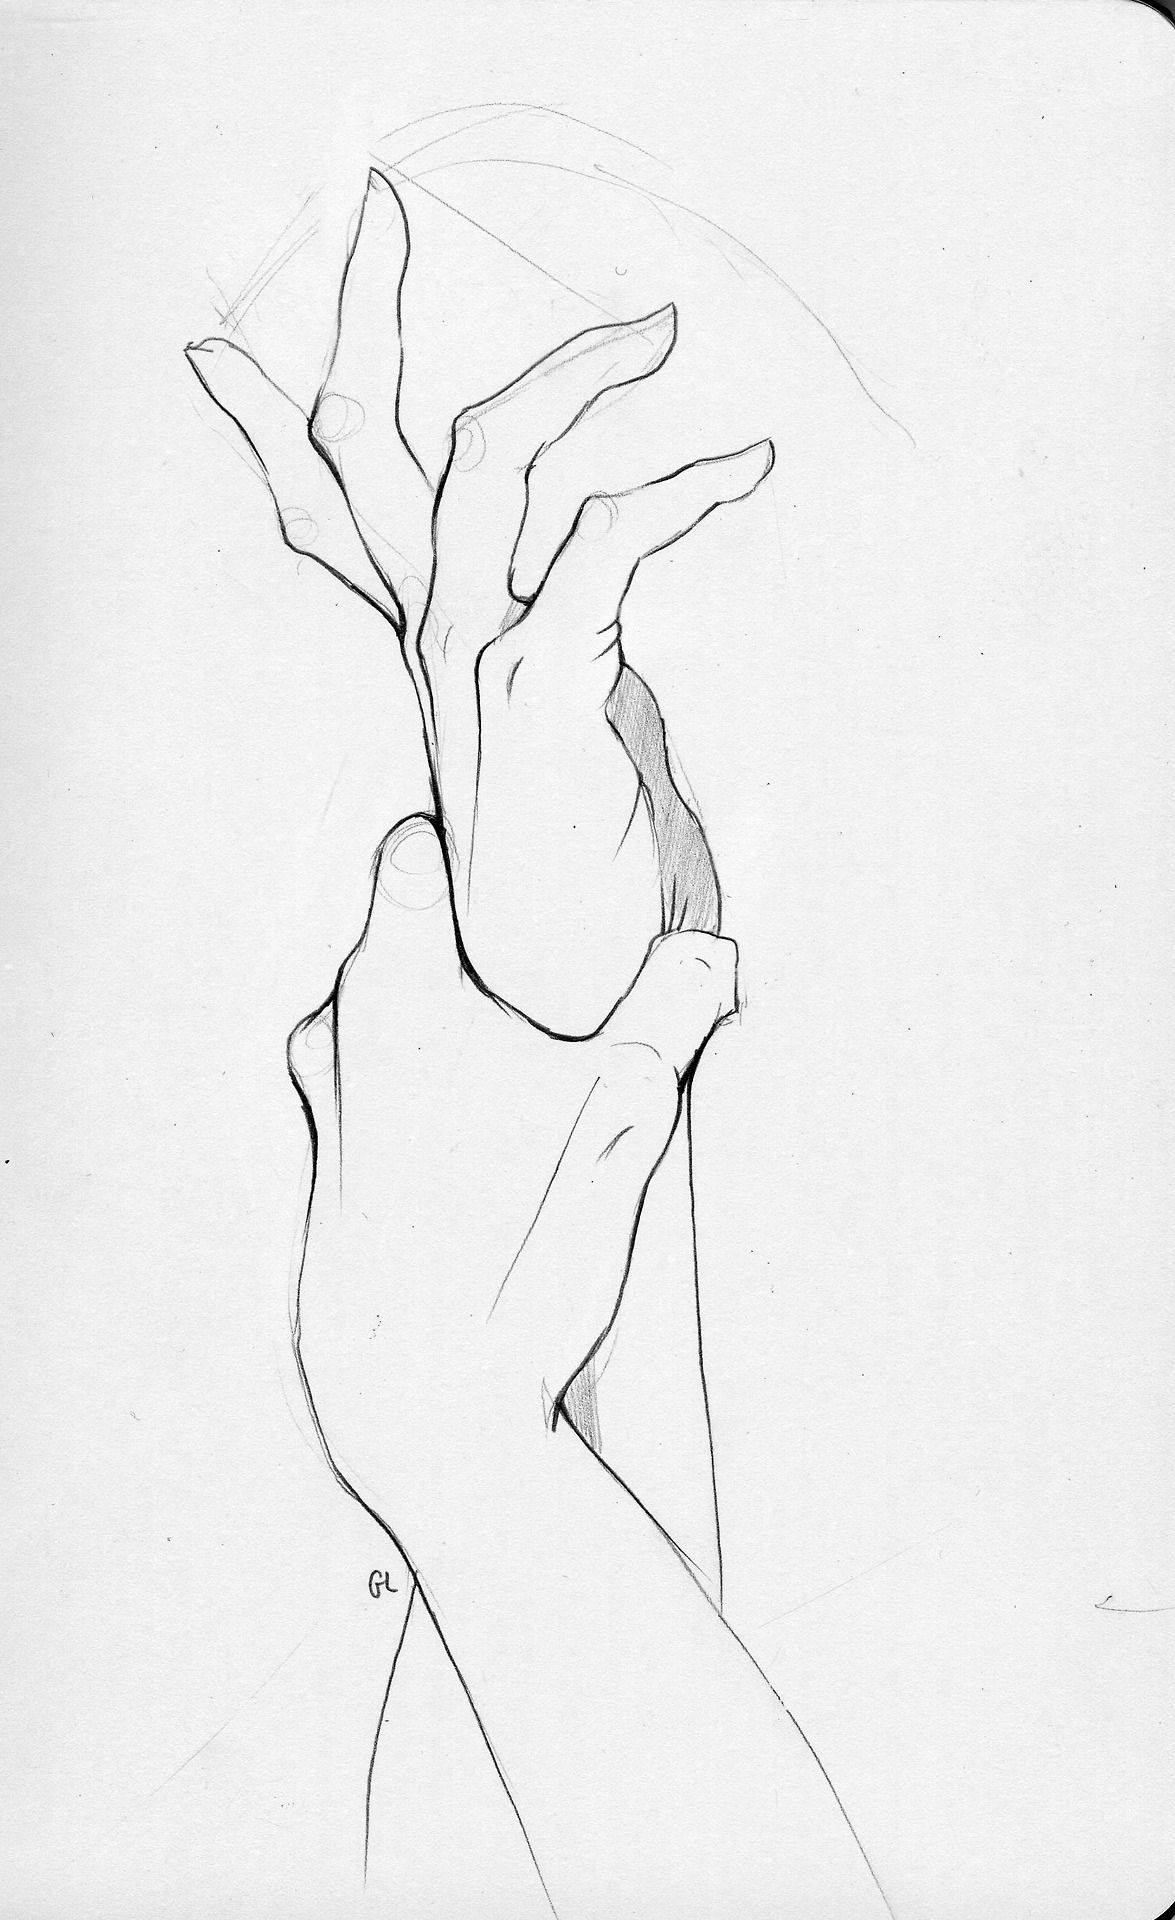 gabalut: Another hand sketch | art | Pinterest | Hand sketch ...